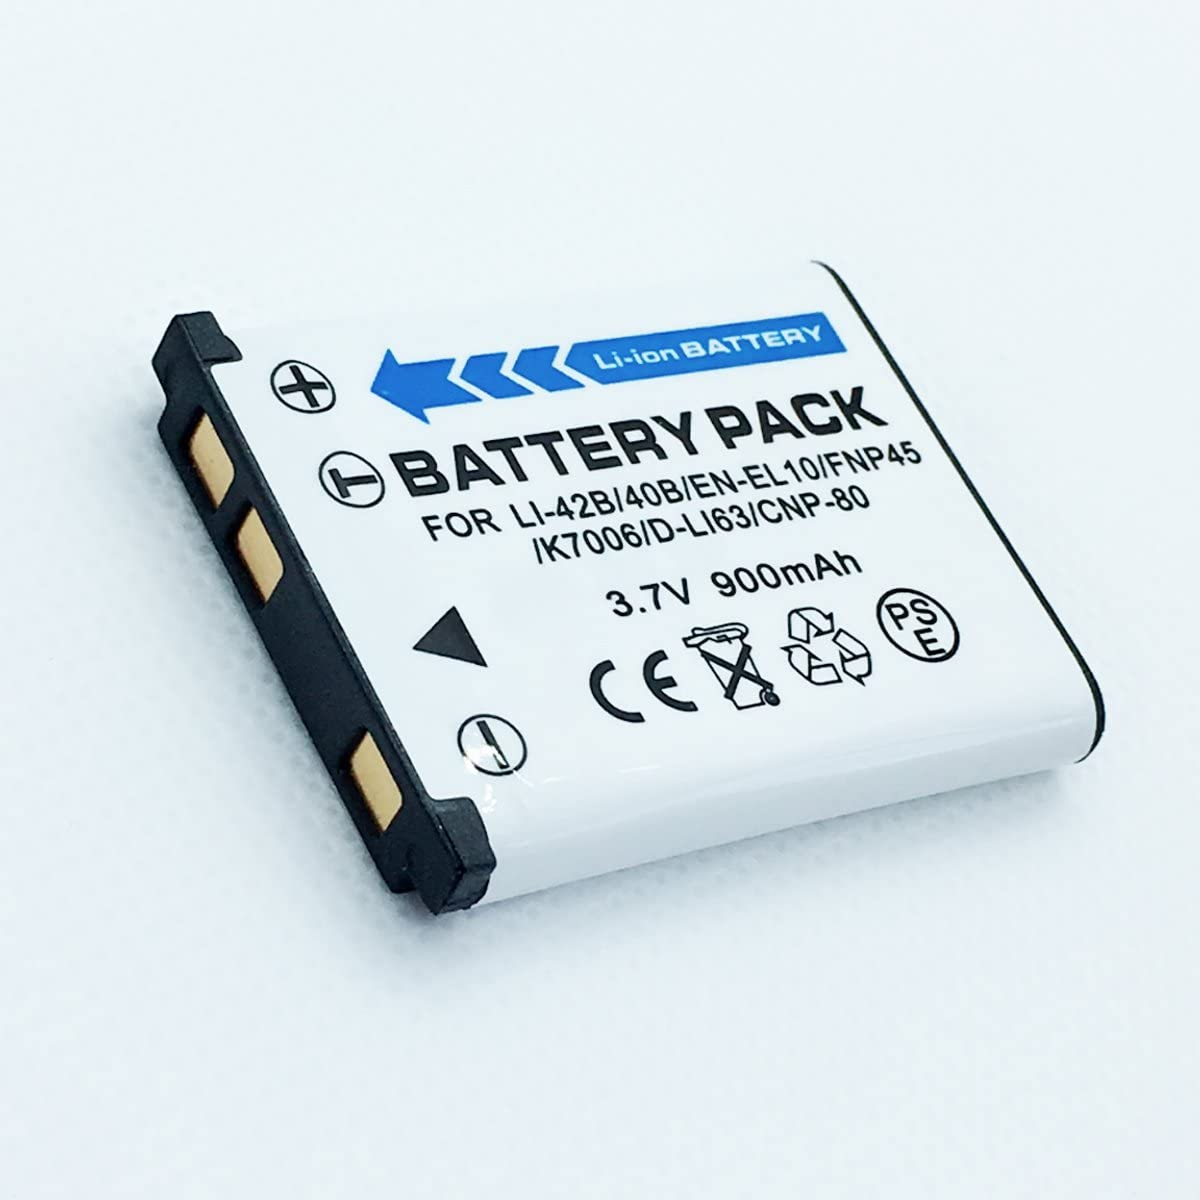 Rechargeable Li-ion Batteries Pack For GE E1410SW, E1450W, E1480W, E1486TW, E1680W Digital Camera